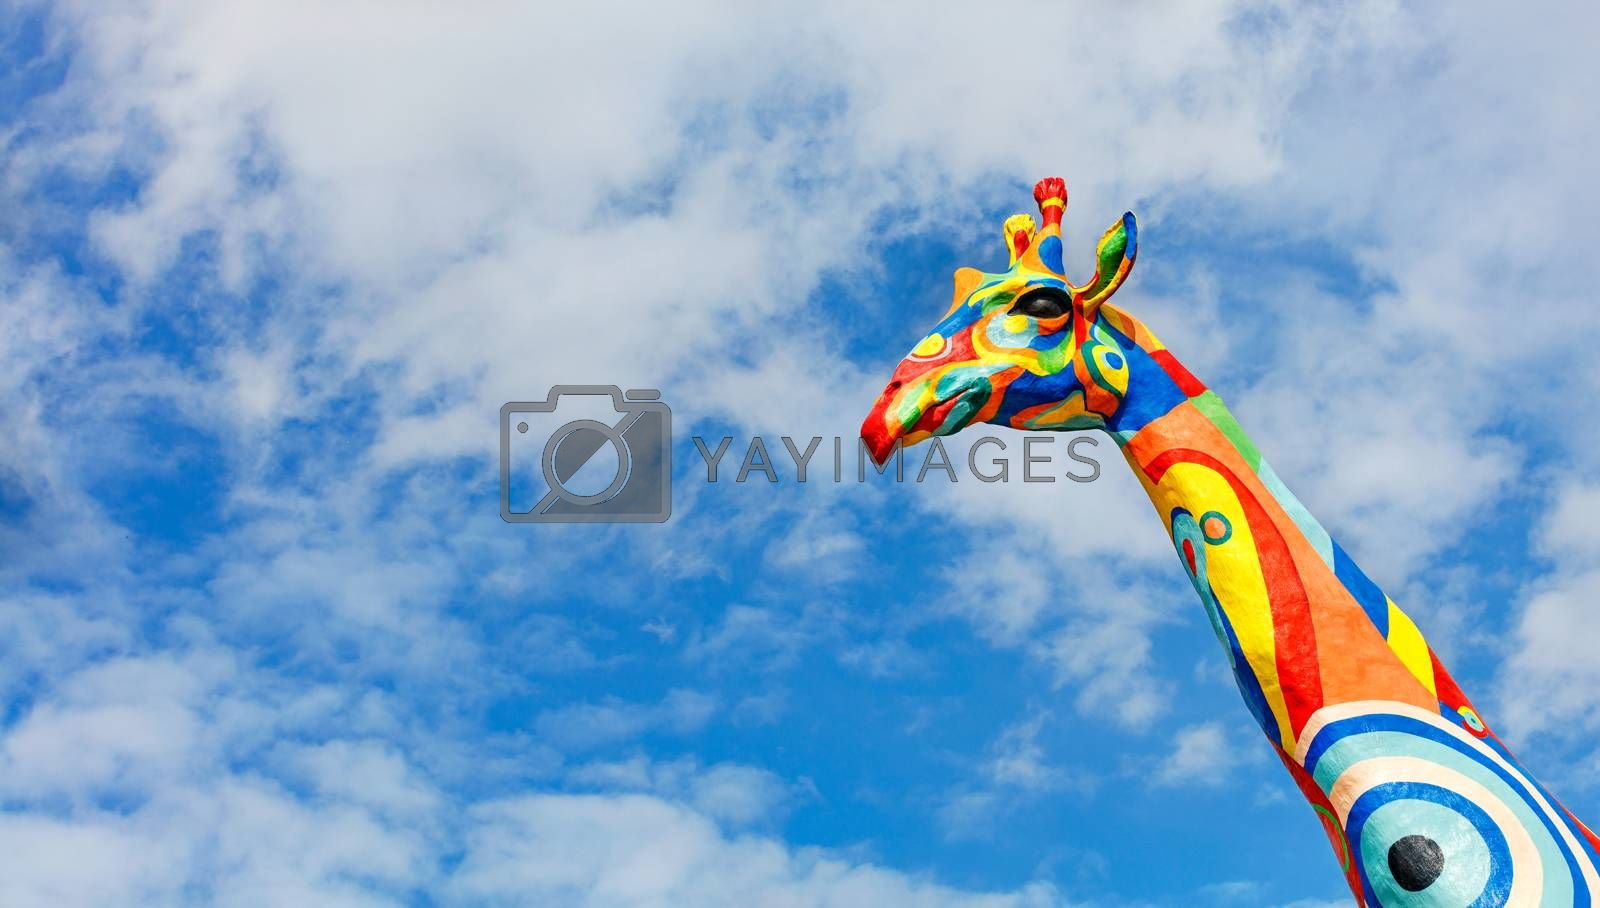 Painted cheerful giraffe head against a blue, slightly cloudy sky in sunlight, copy space.